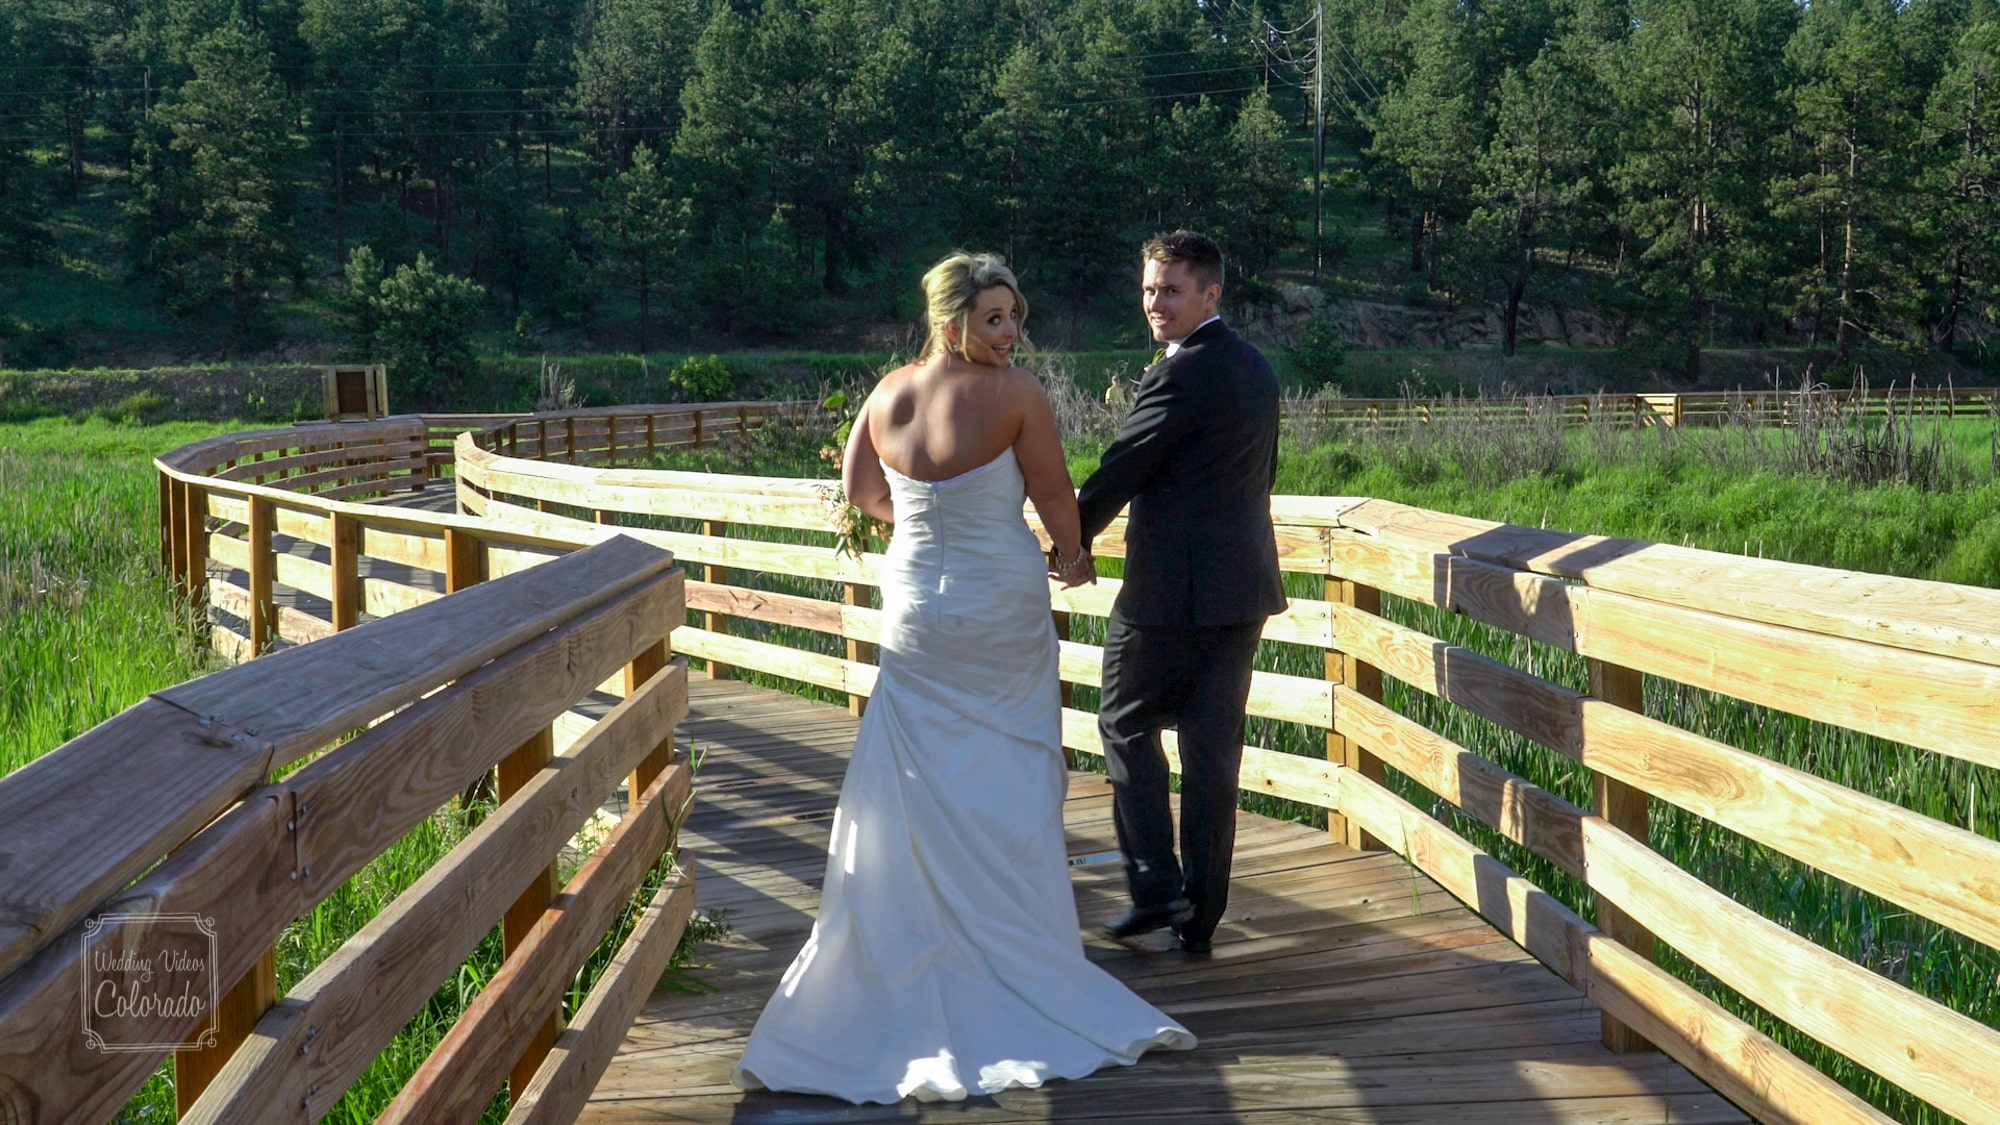 Lofing-Anderson Evergreen Wedding